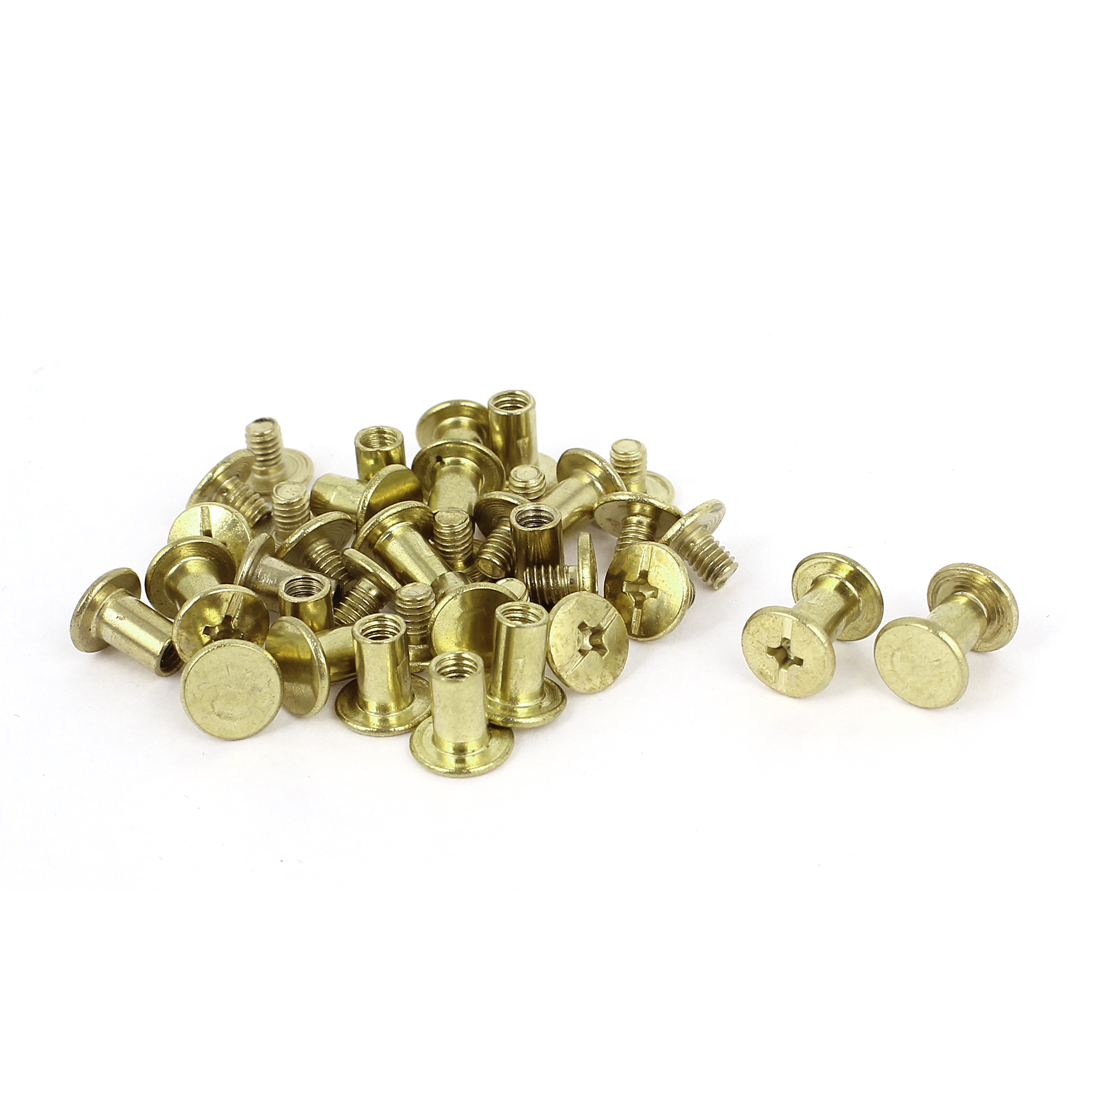 Brass Plated 5x8mm Binding Chicago Screw Post 20pcs for Album Leather Purse